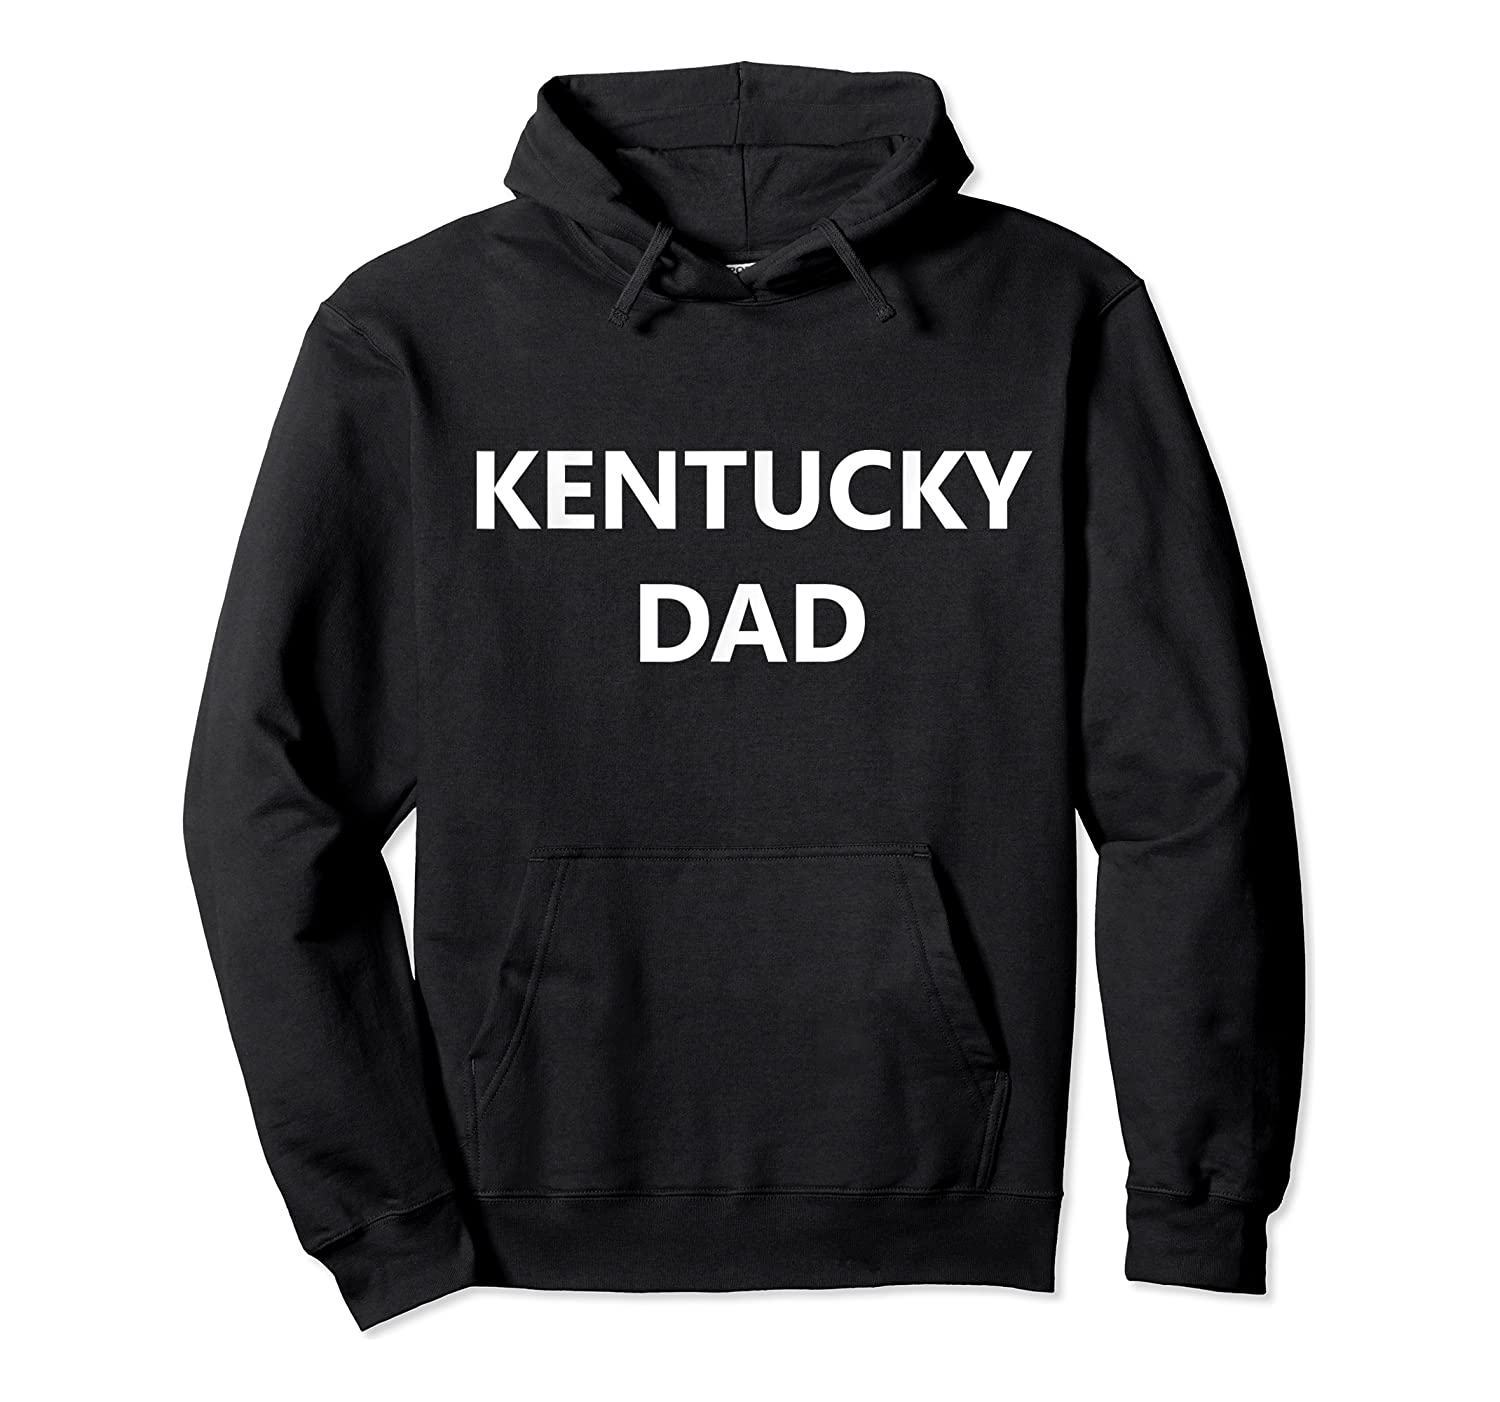 Kentucky Dad Basketball Hoops College Big Blue Madness Gift T-shirt Unisex Pullover Hoodie